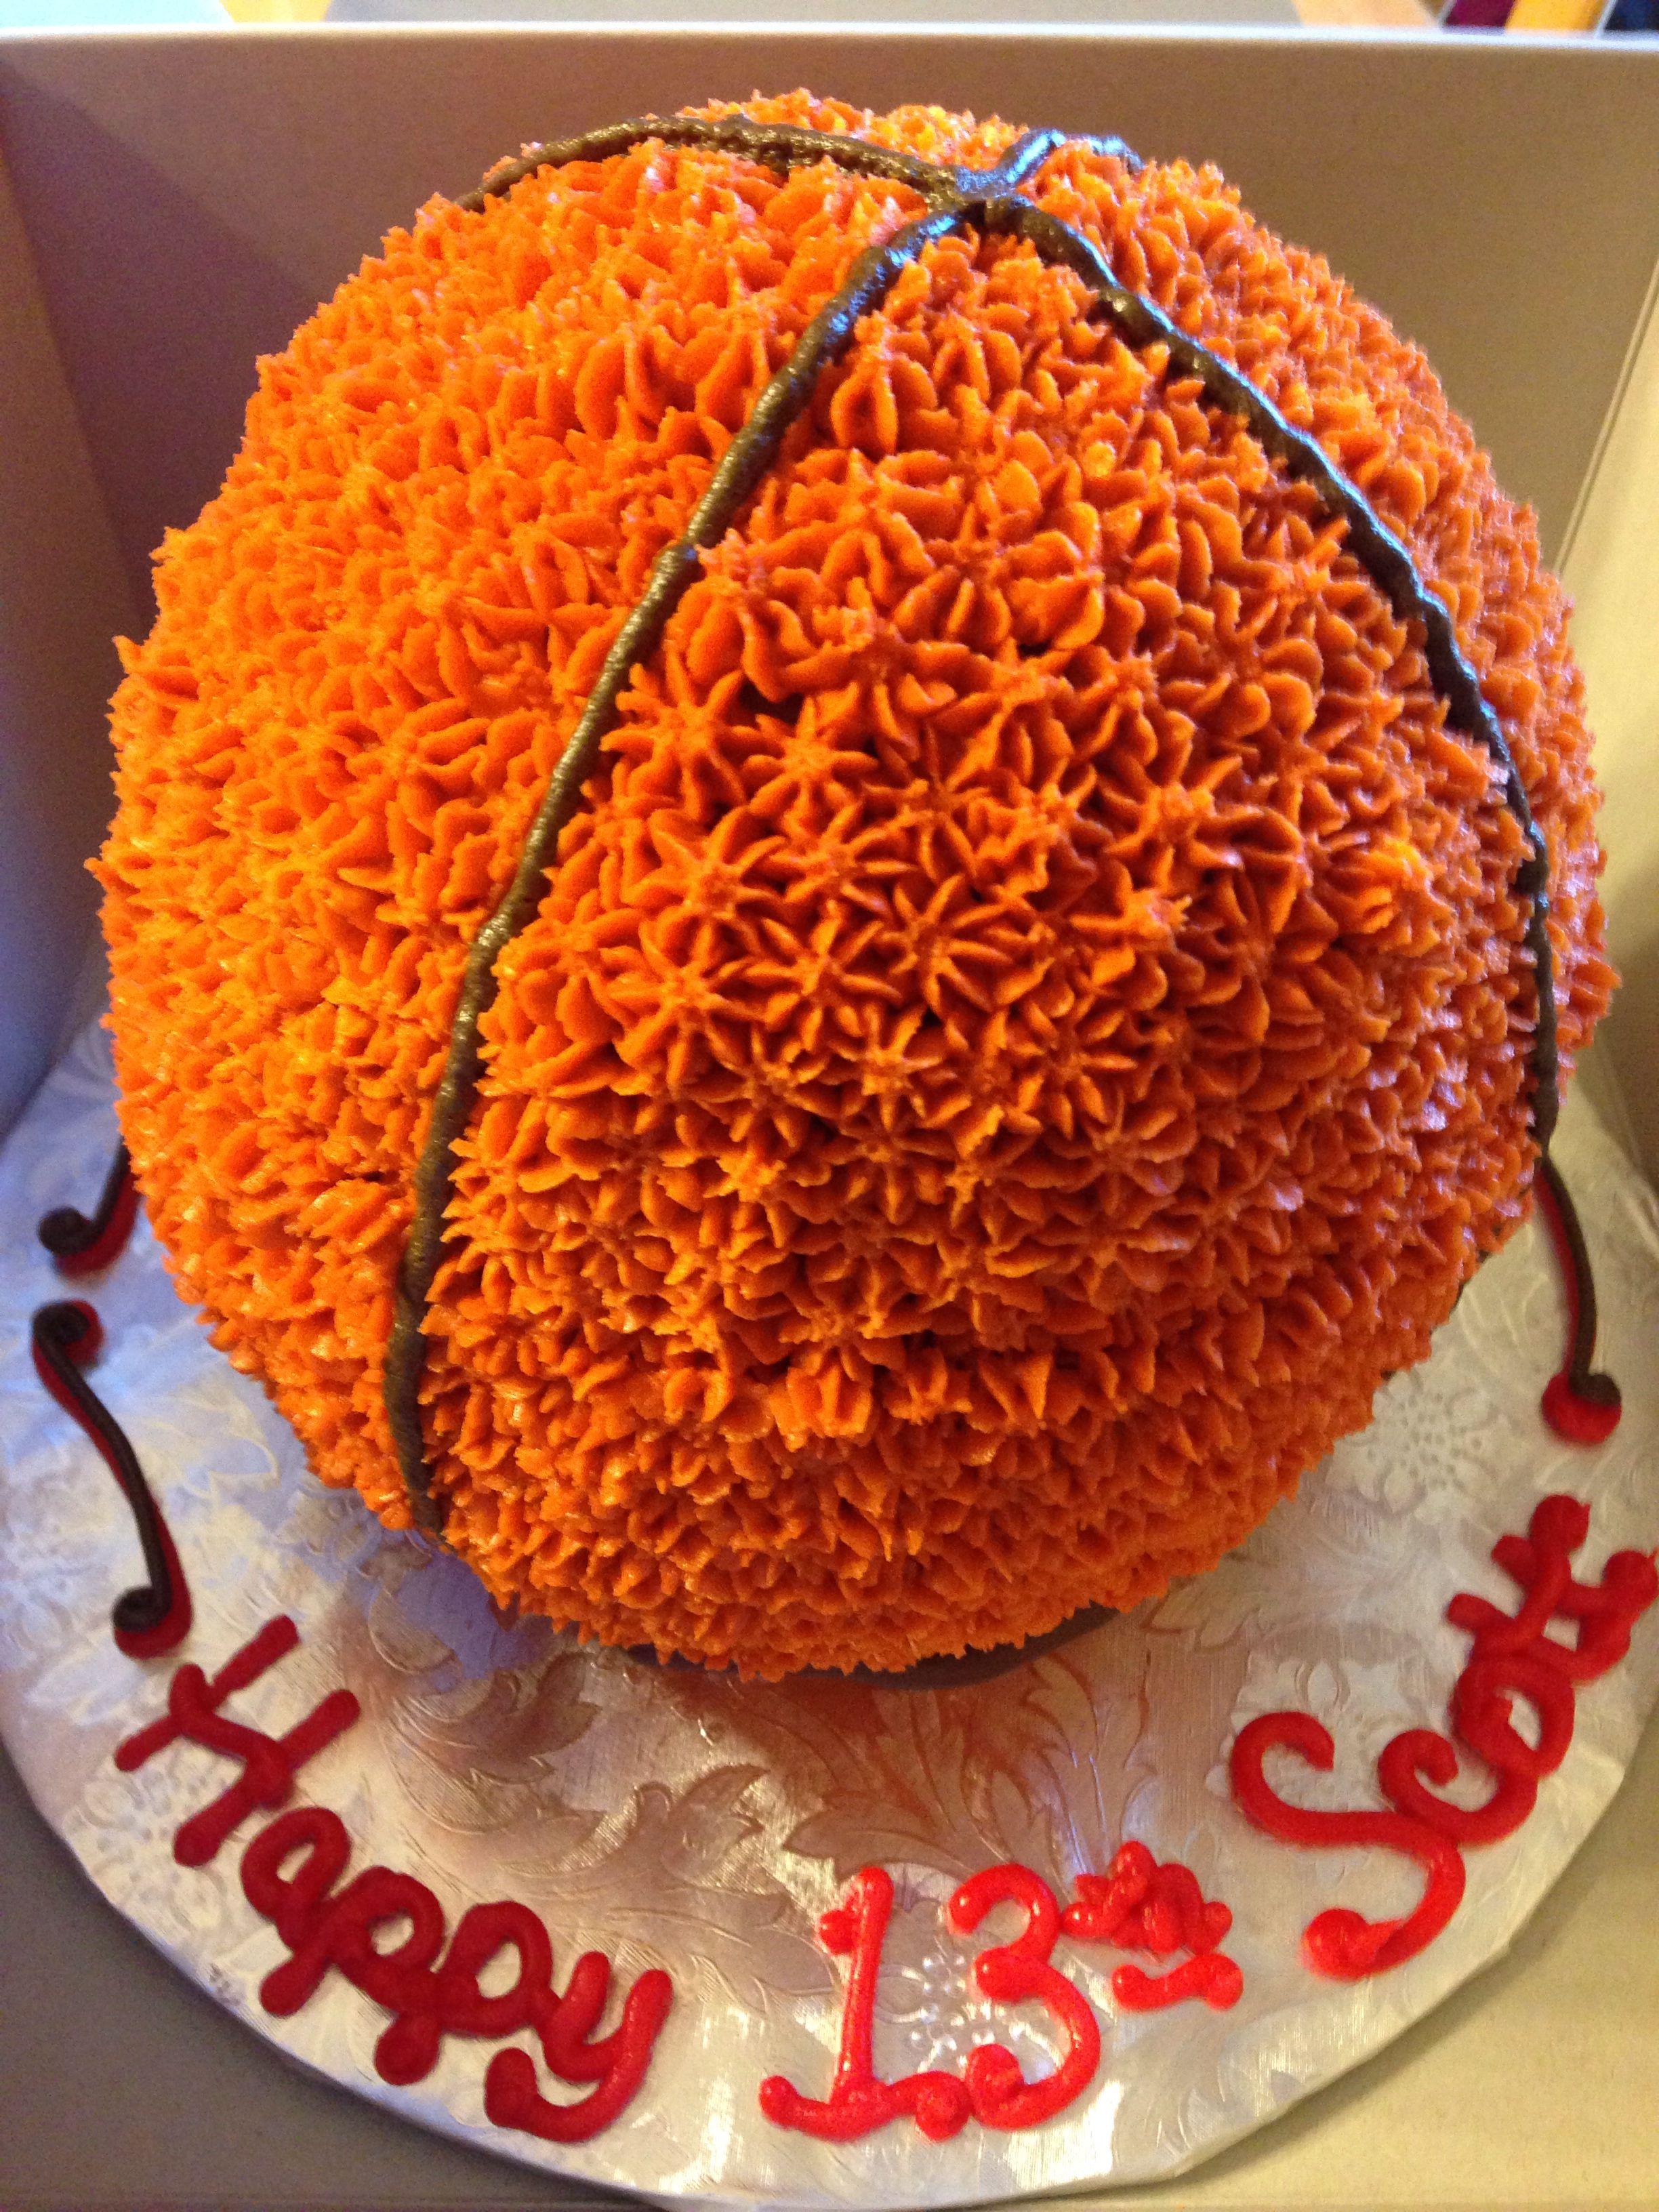 Wilton Basketball Cake